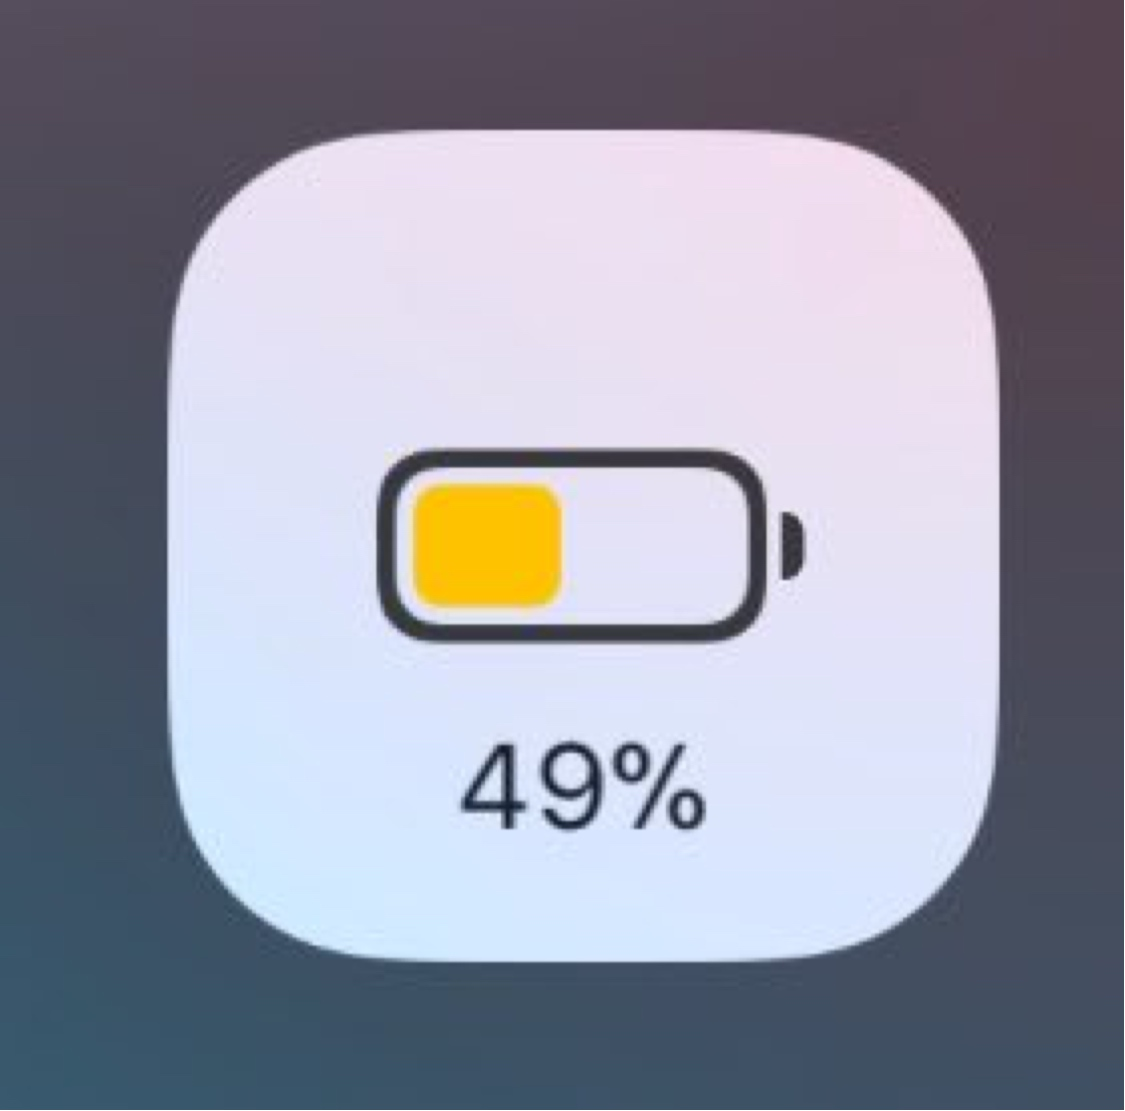 Low Battery Power Indicator